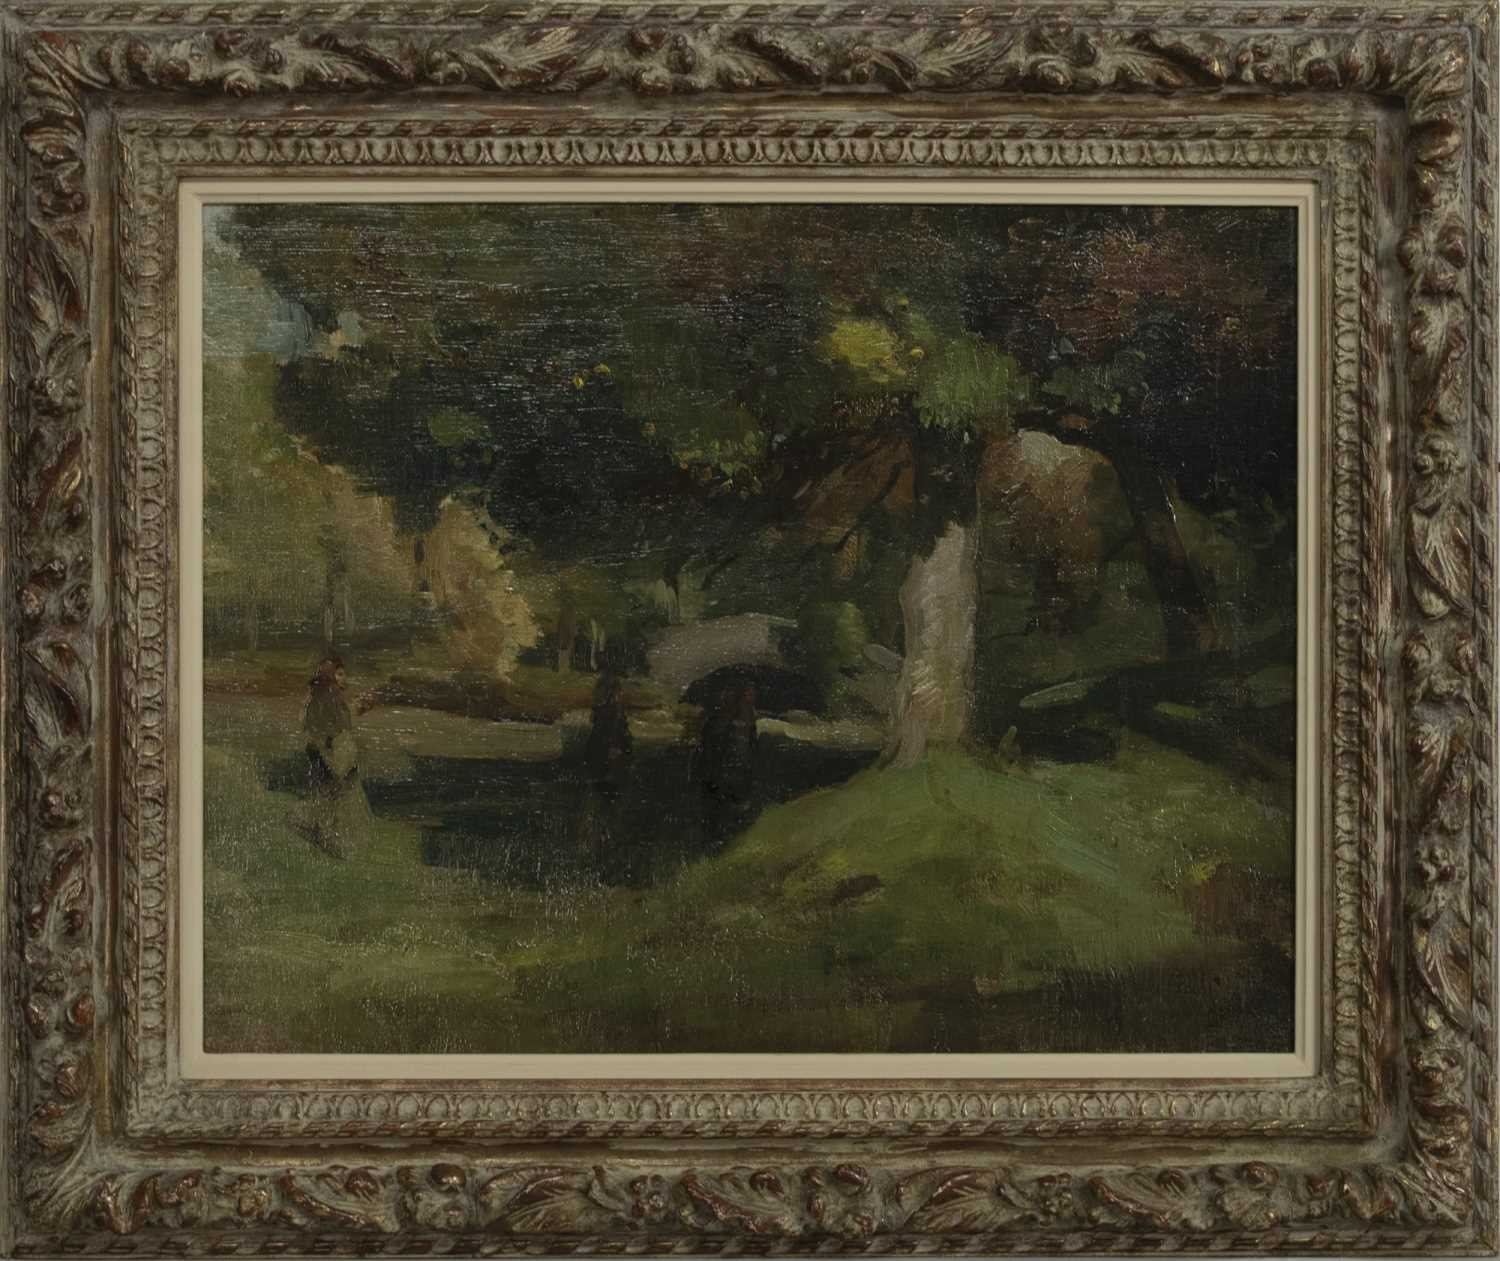 Lot 2031 - A RIVER WALK IN SUMMER, AN OIL BY THOMAS BROMLEY BLACKLOCK